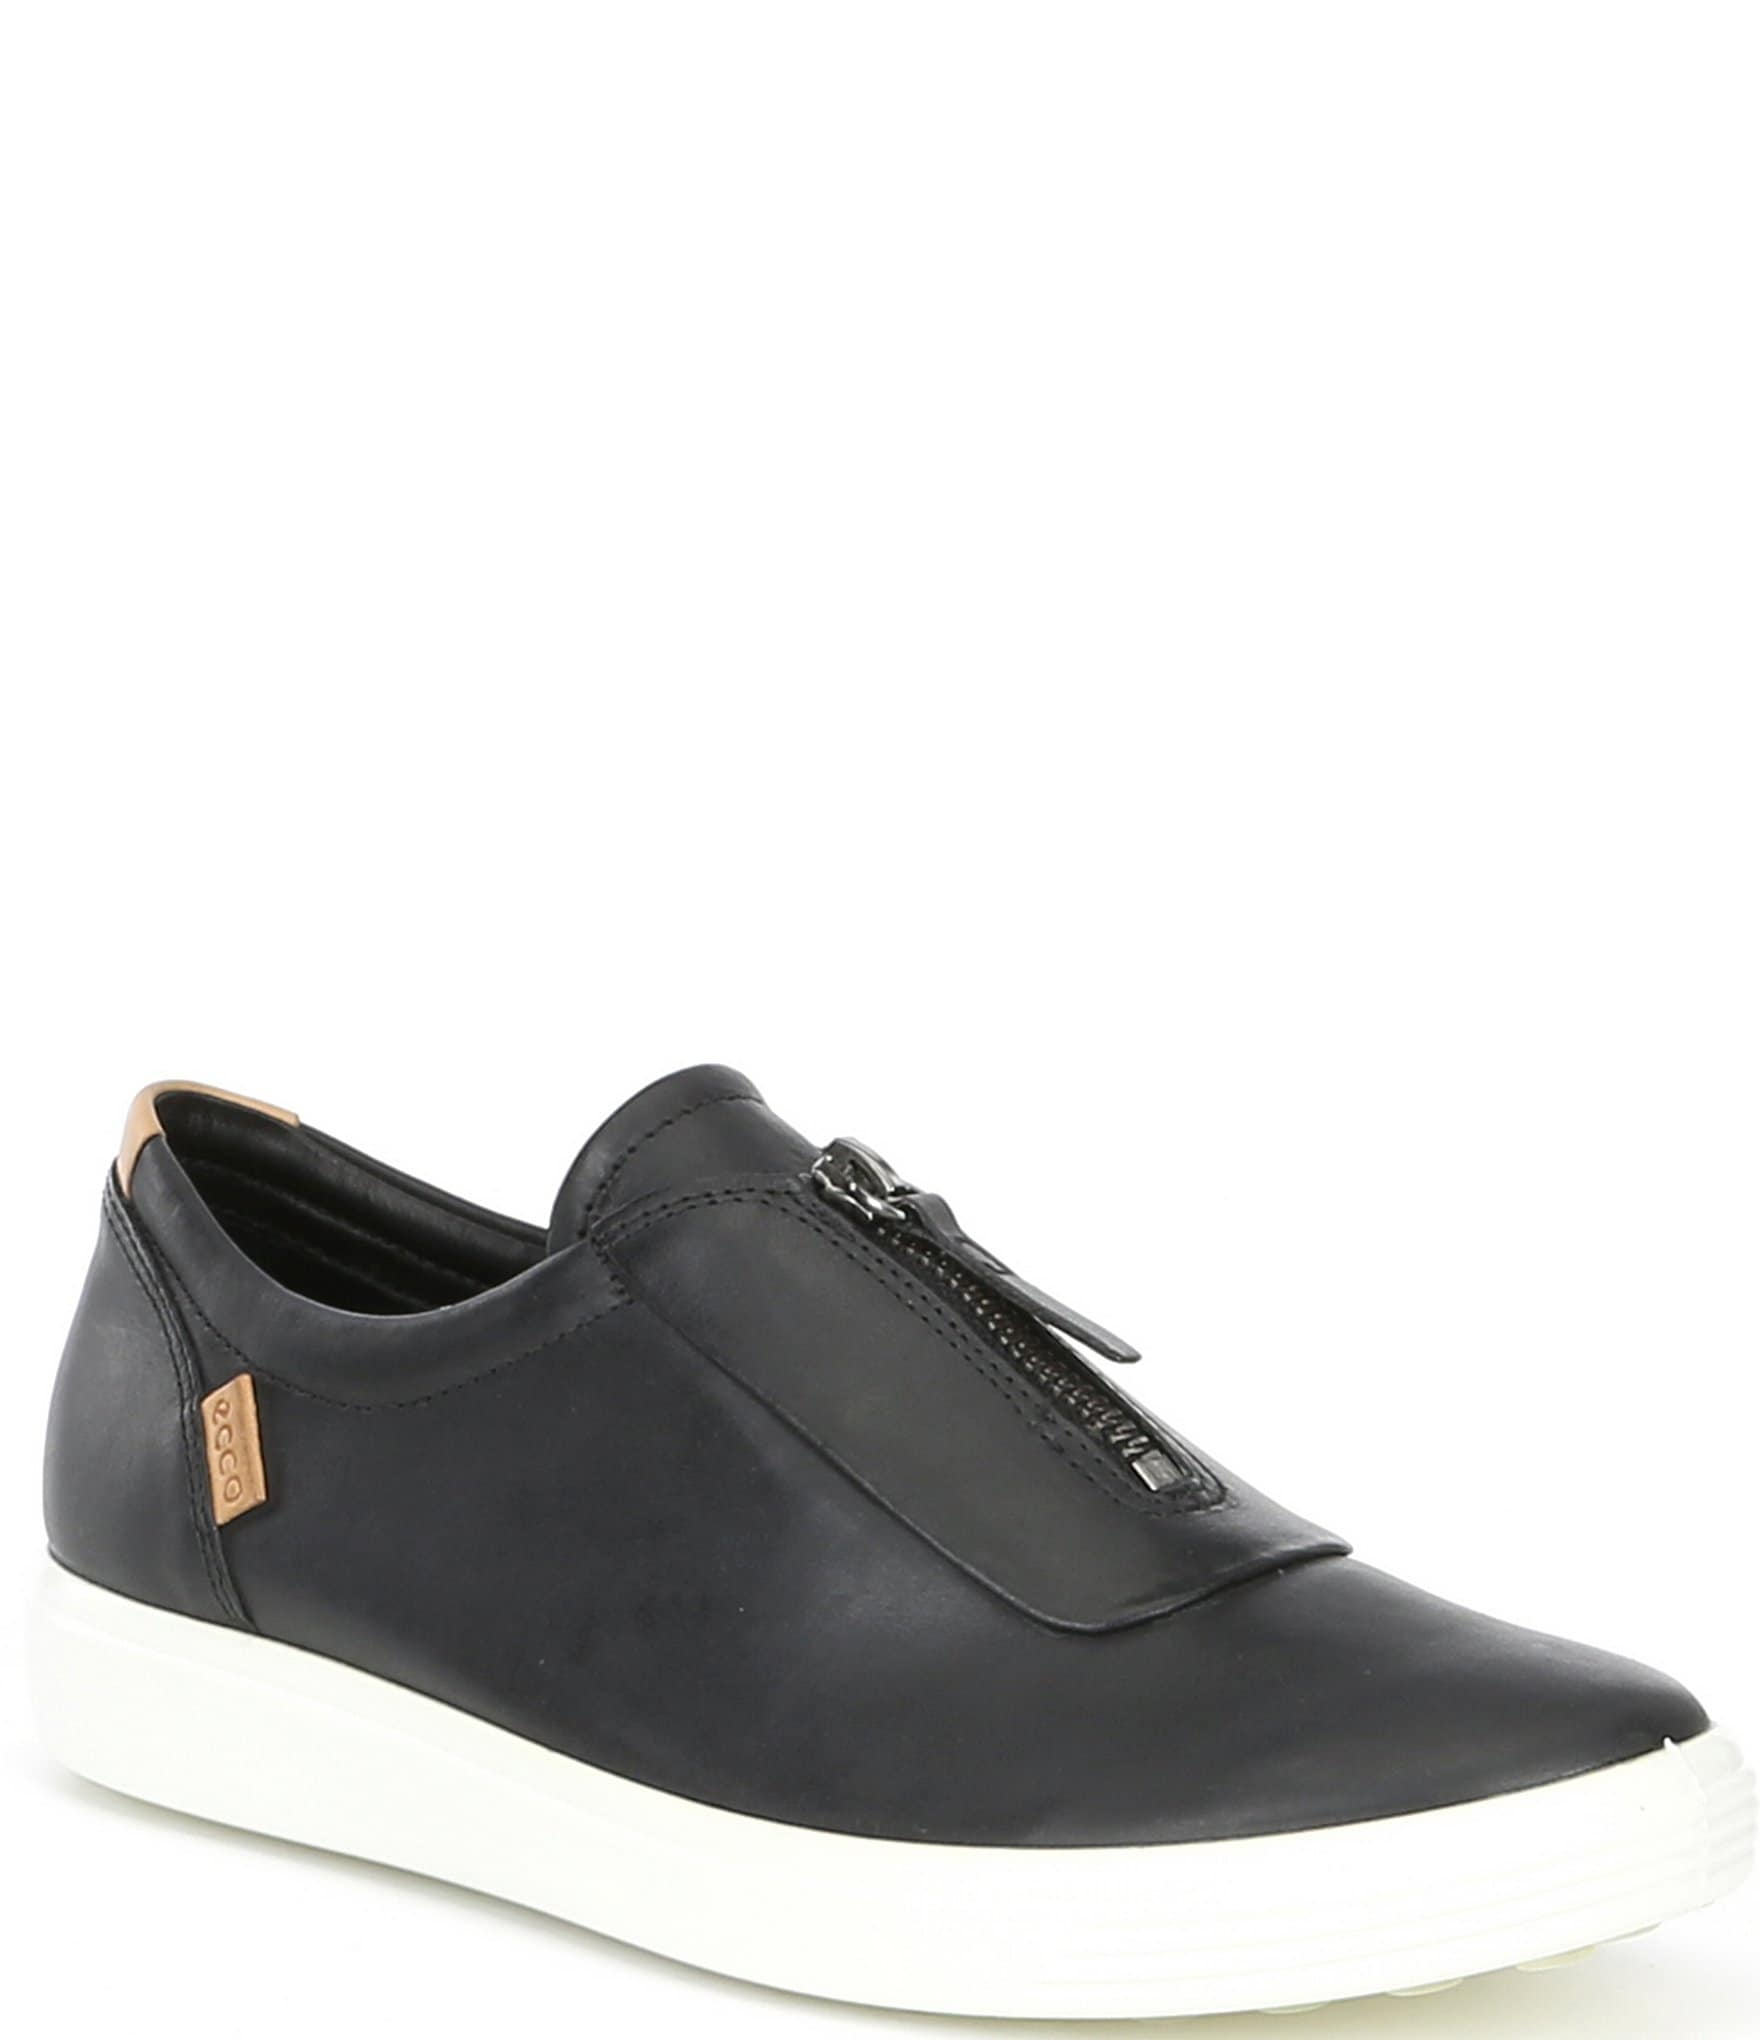 ECCO Soft 7 Leather Front Zip Sneakers